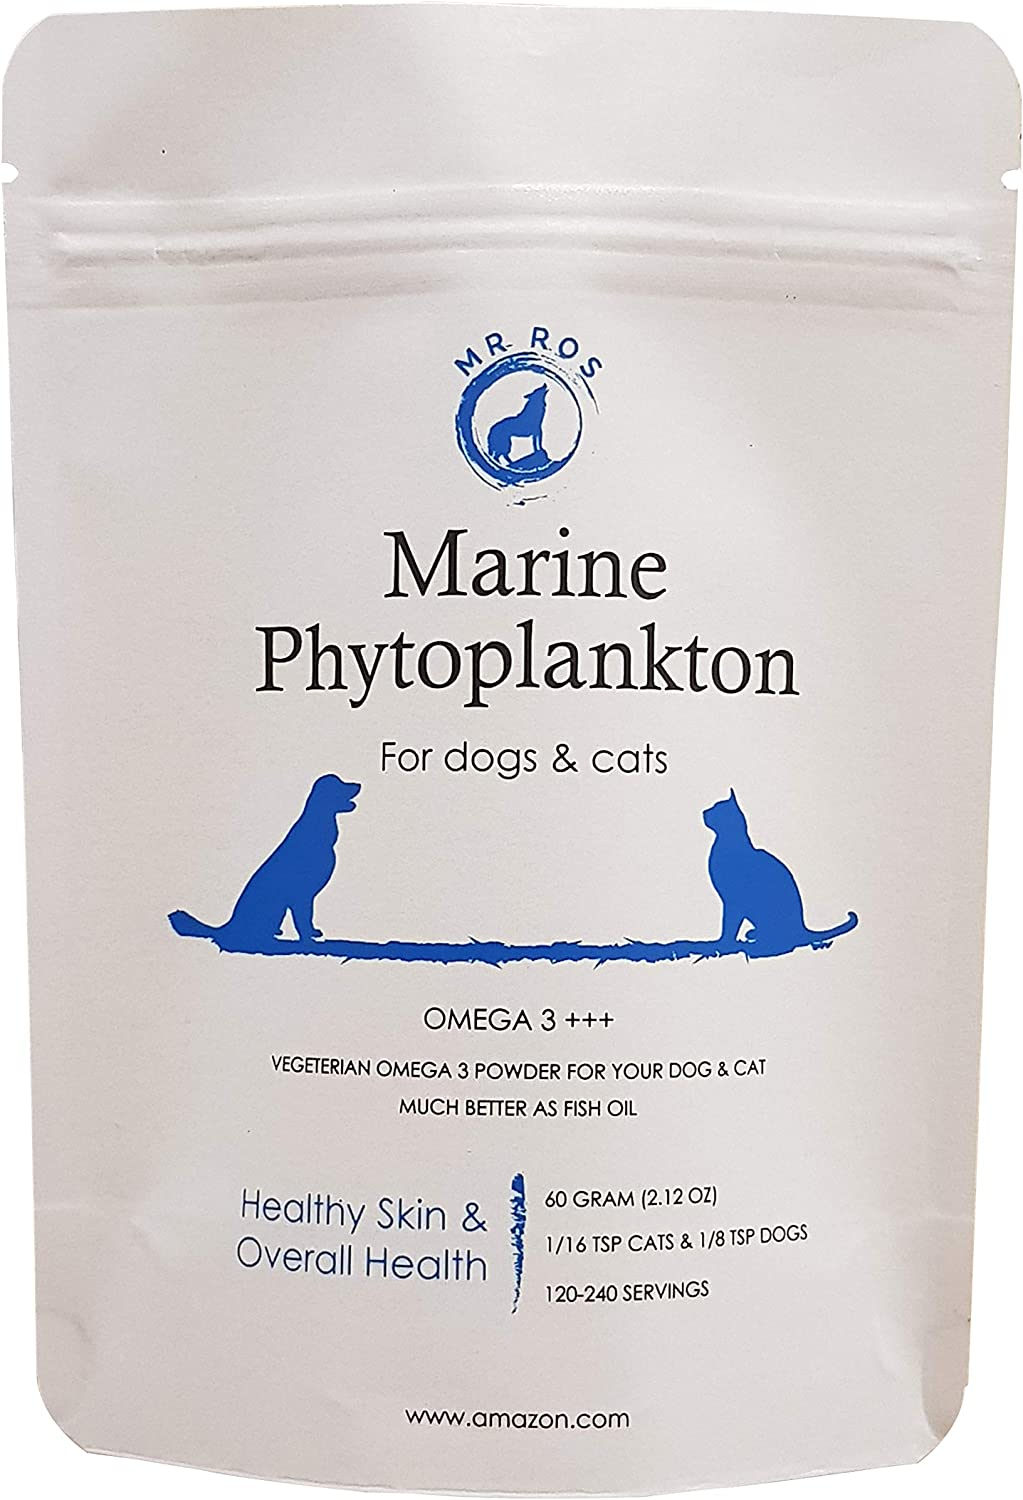 Marine Phytoplankton Omega 3 EPA Non Fish Oil Vegetarian Superfood Powder for Dogs Cats for Healthy Skin Overall Health